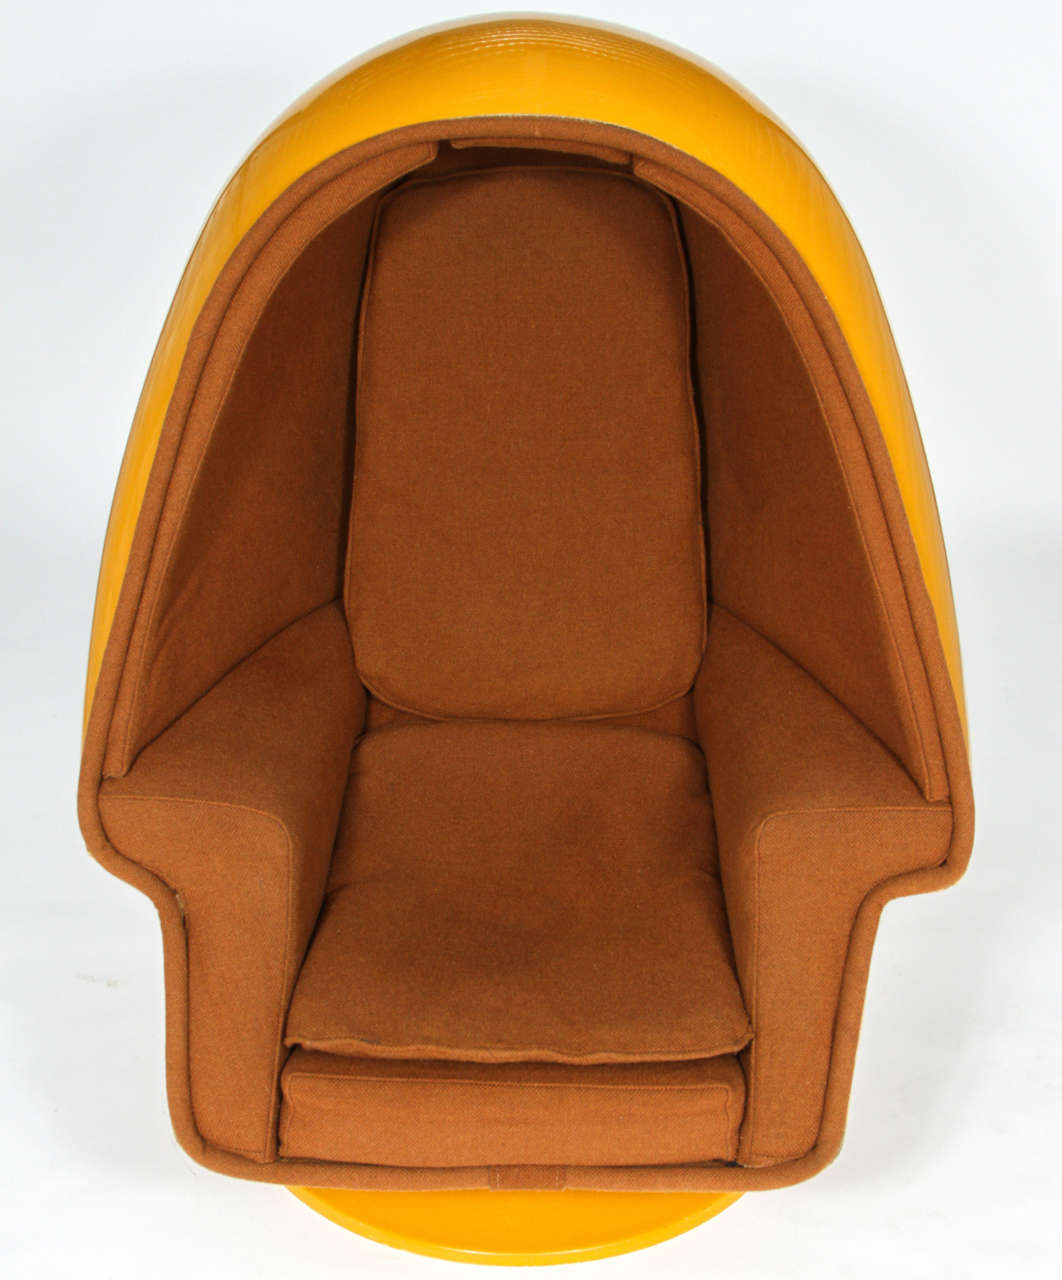 Egg Chair With Speakers 1970 Vintage Lee West Alpha Chamber Egg Pod Stereo Chair